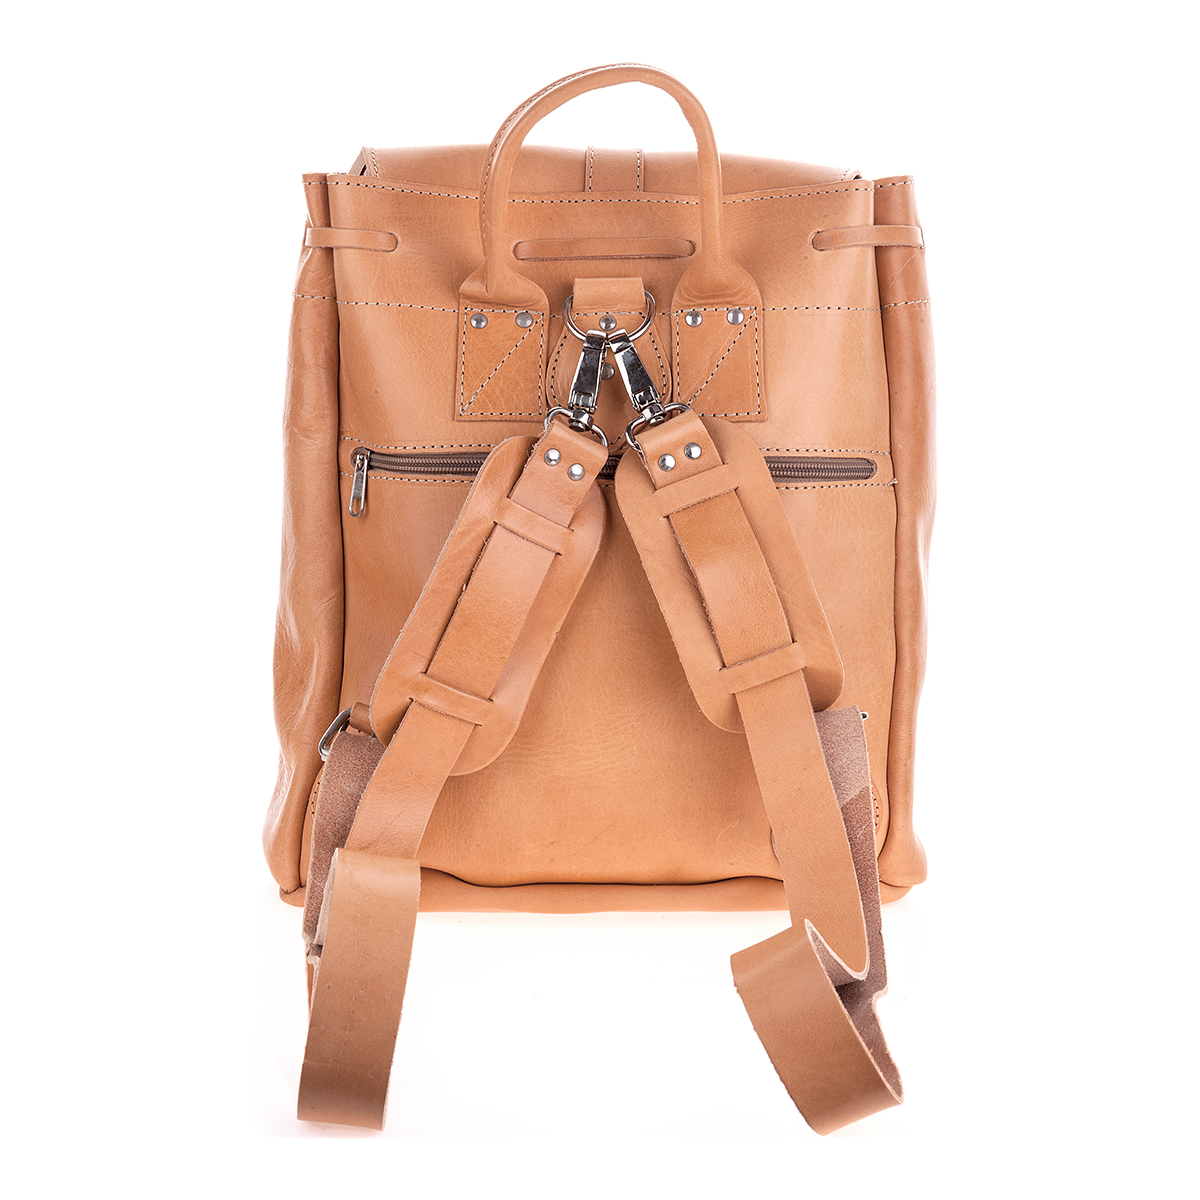 Leather Backpack / Travel Bag in XL - Irisandals